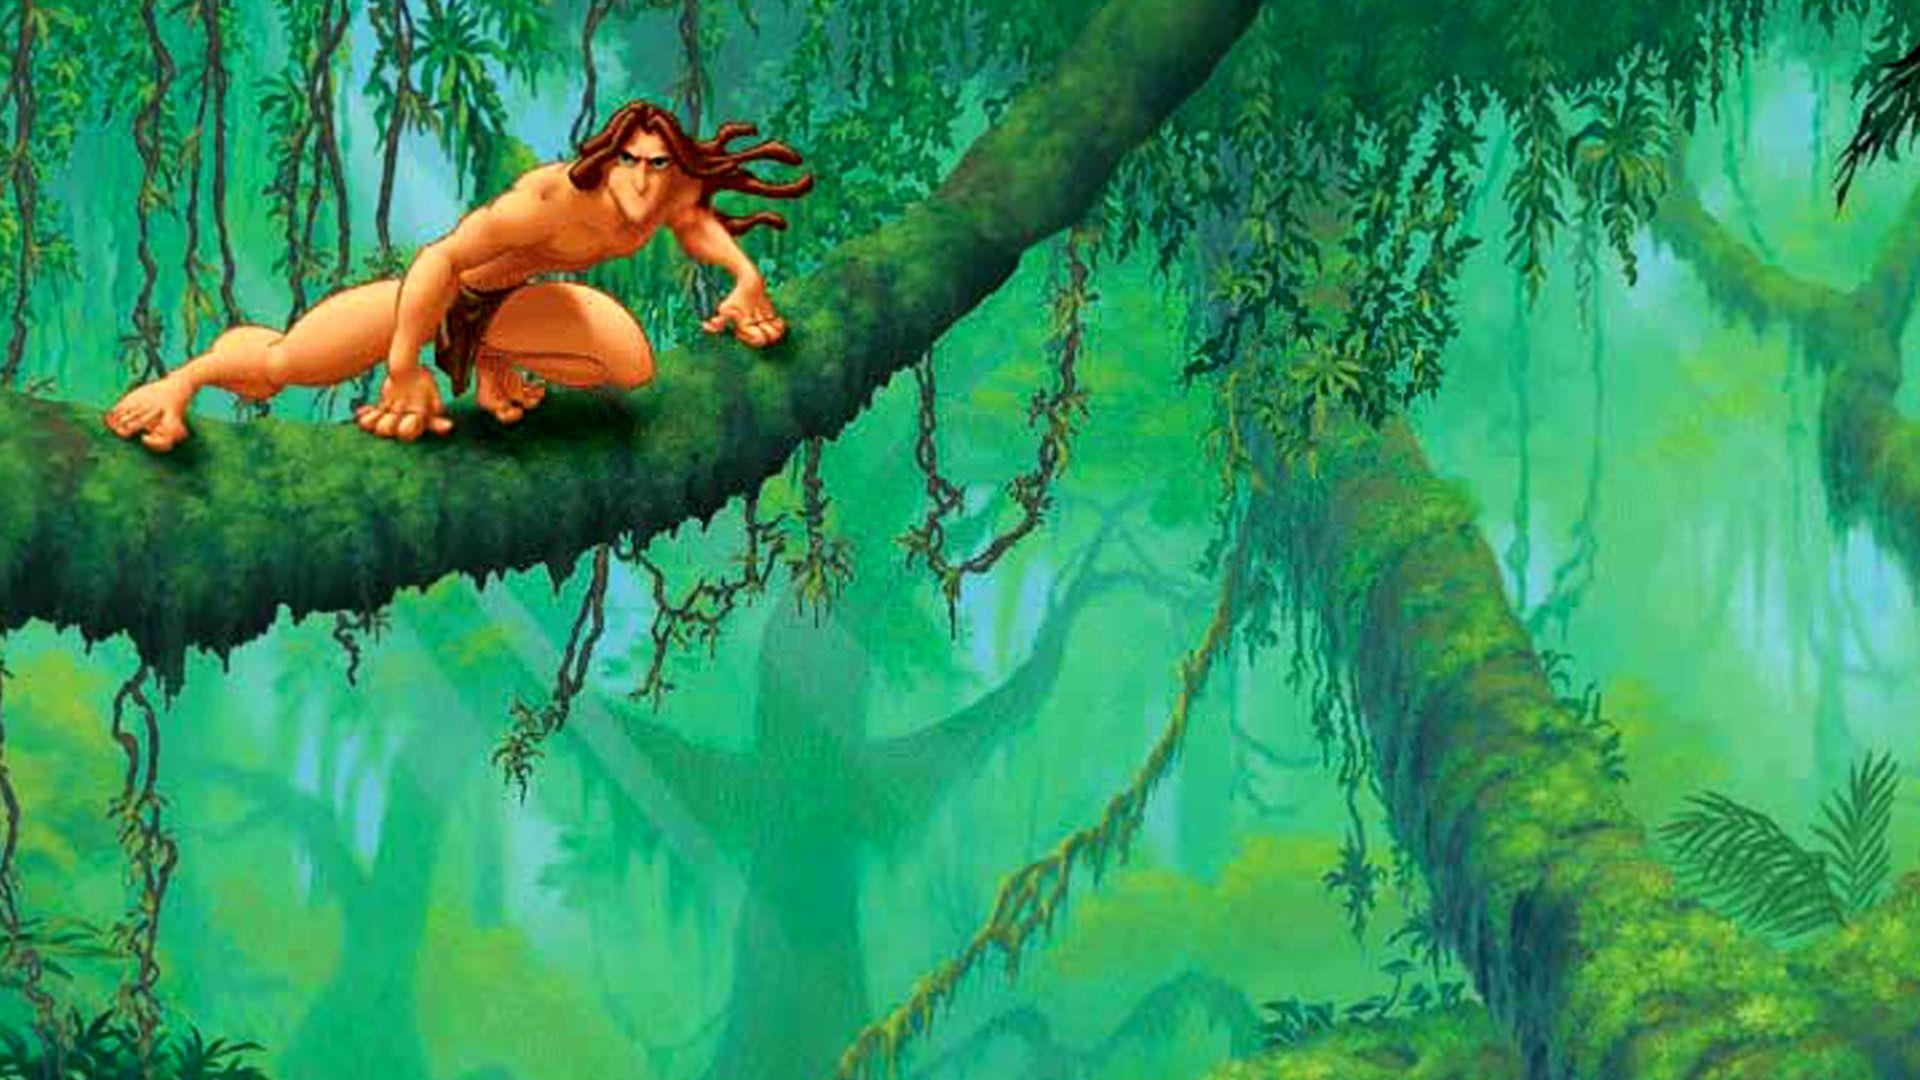 Tarzan wallpapers wallpaper cave - Tarzan wallpaper ...